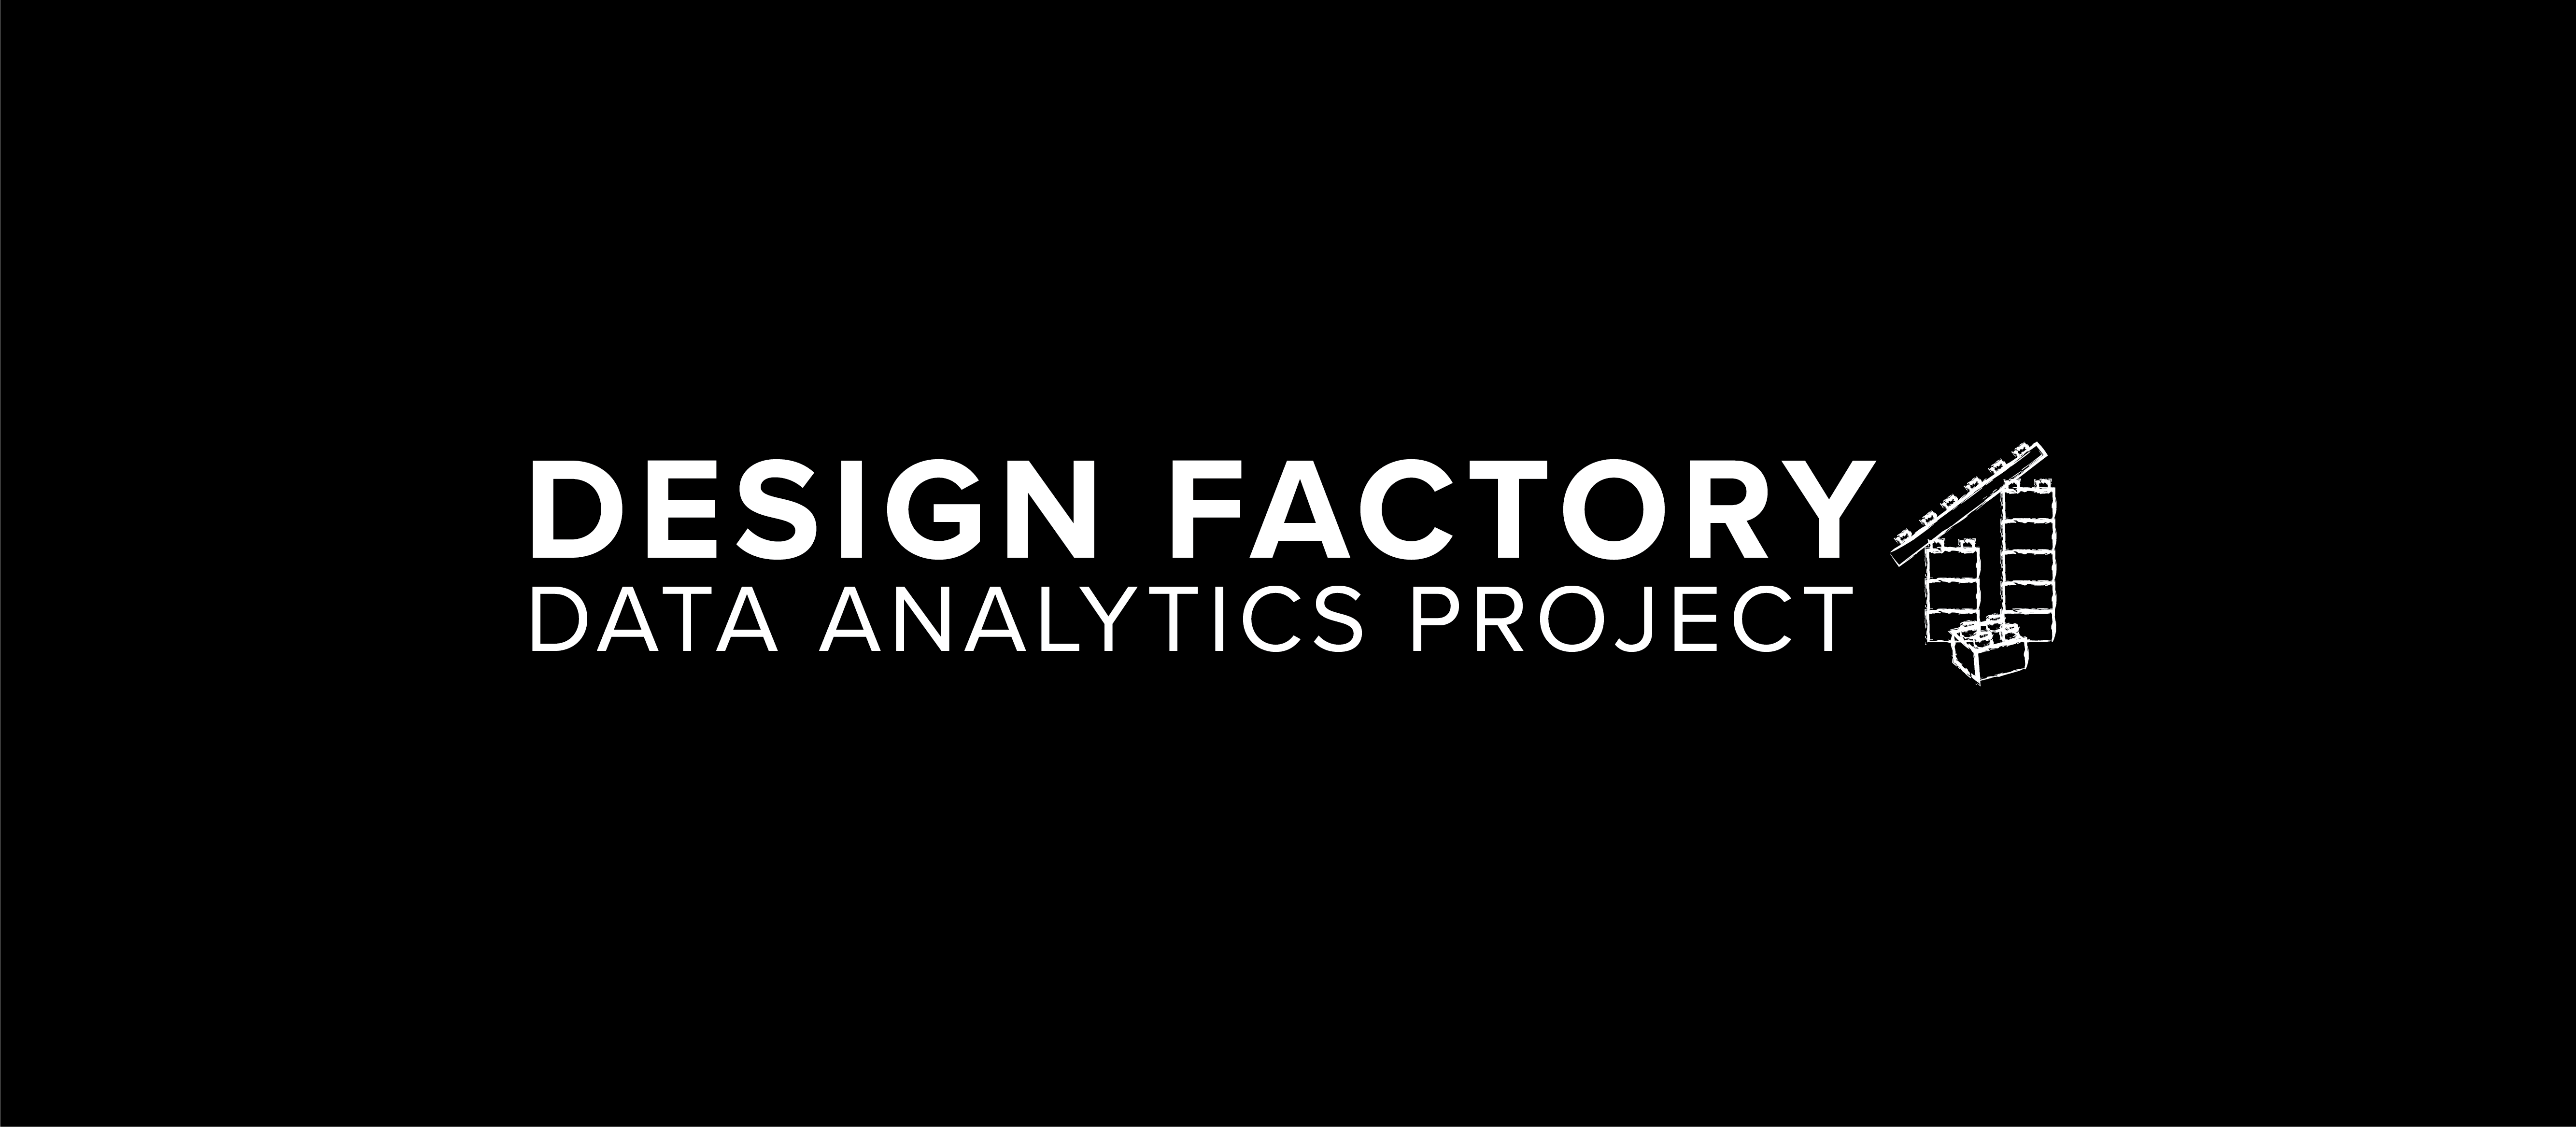 Course Image Design Factory Data Analytics Project 2021